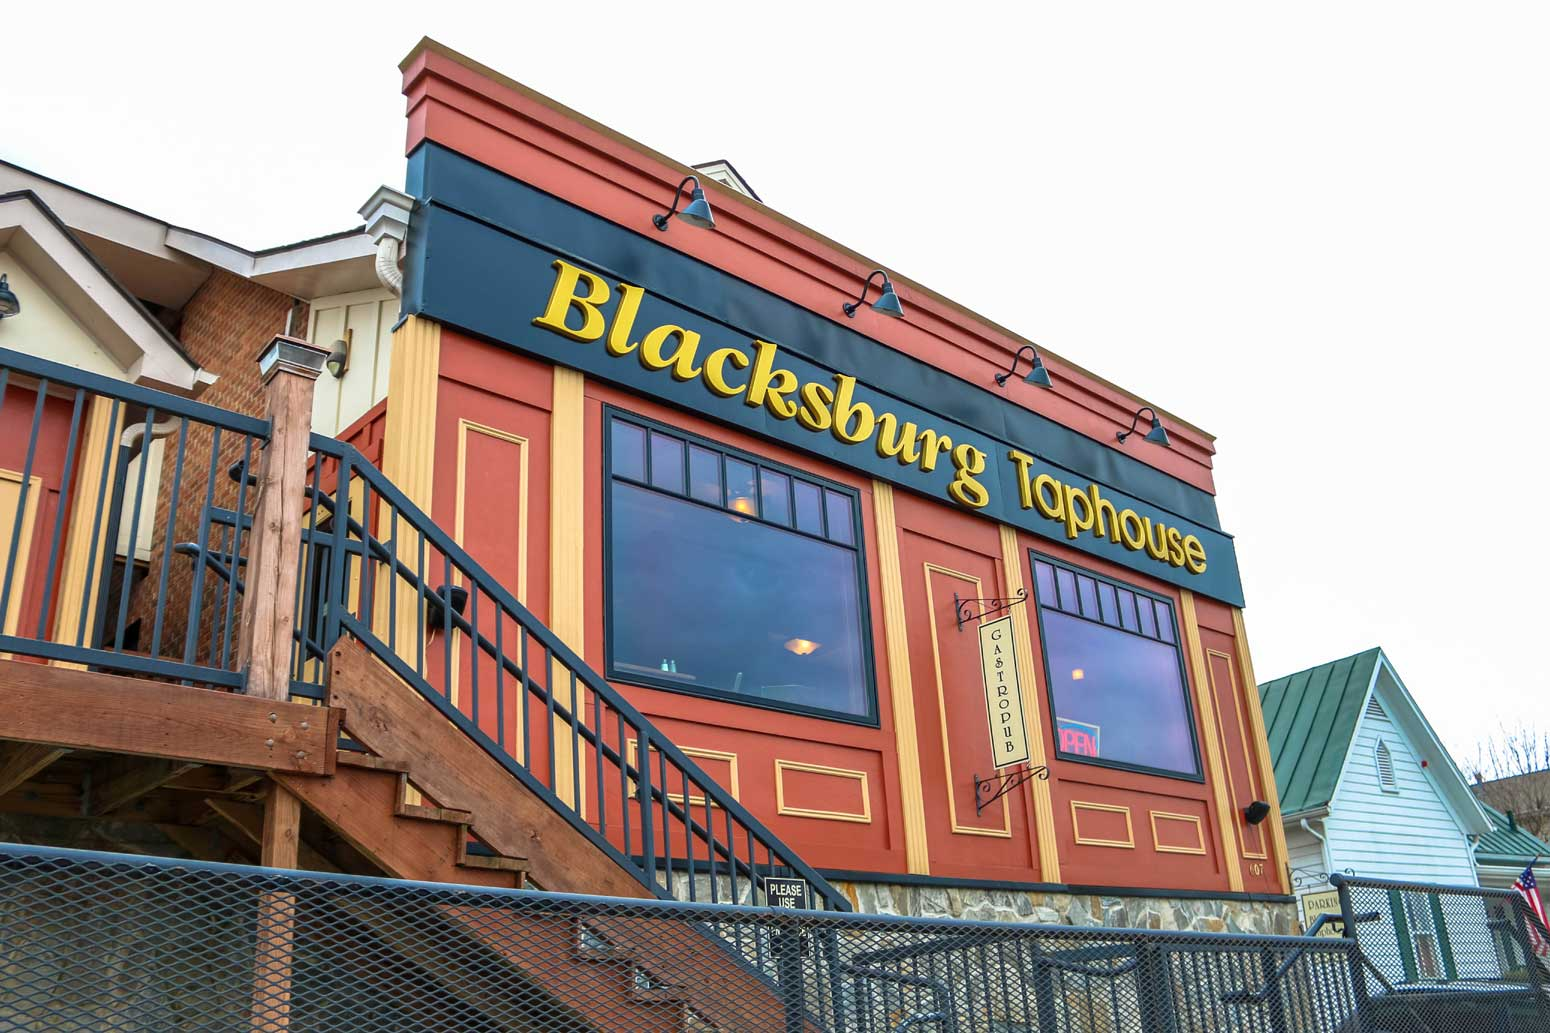 Blacksburg Taphouse in blacksburg, va